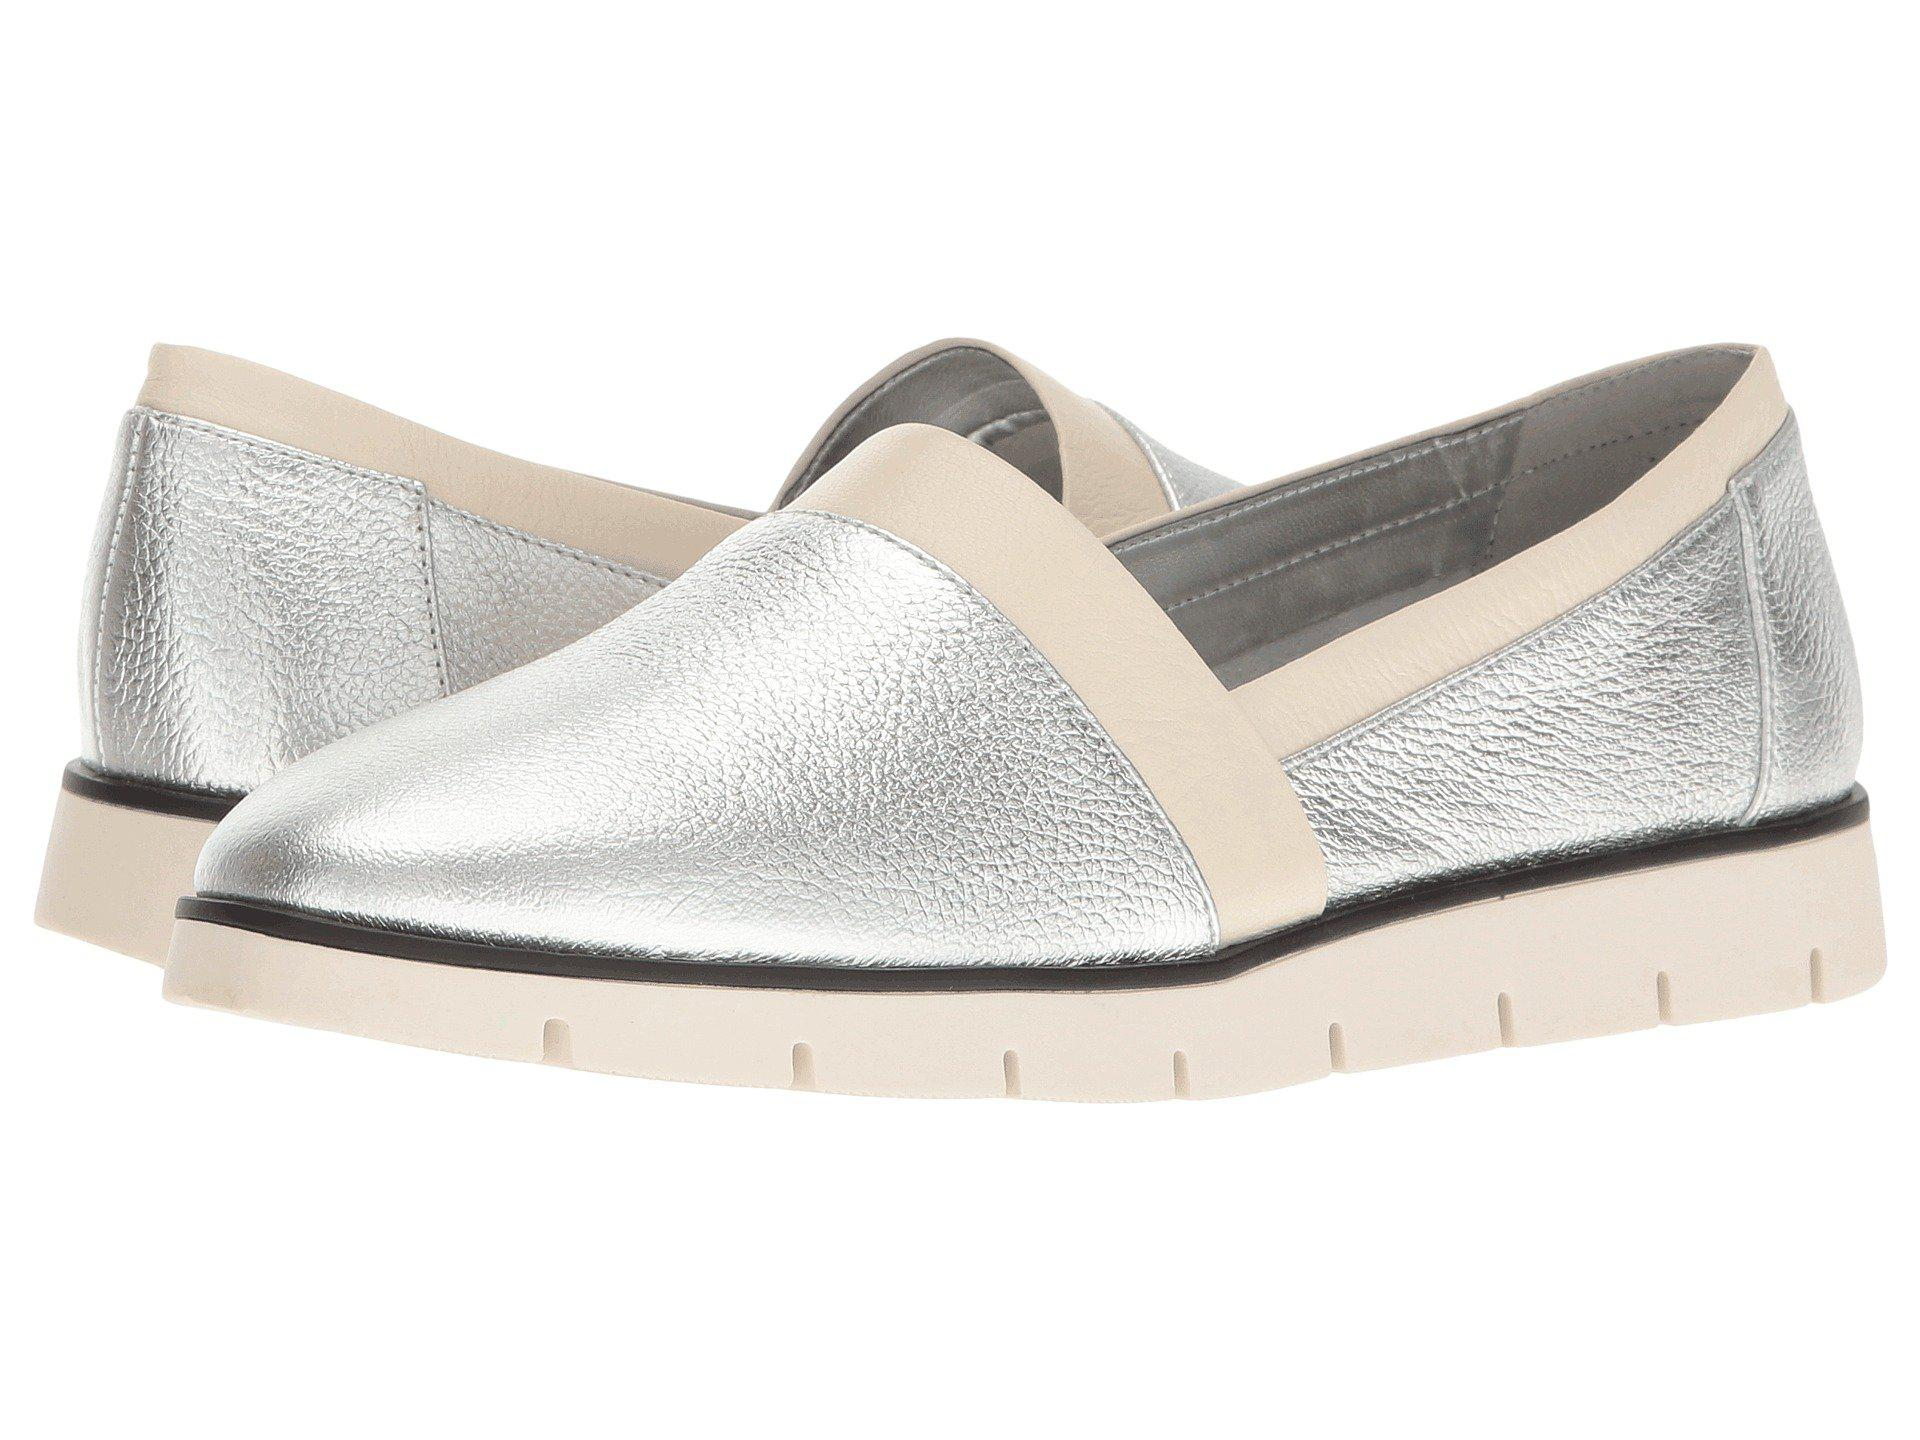 Nine West. Women's Metallic Uala